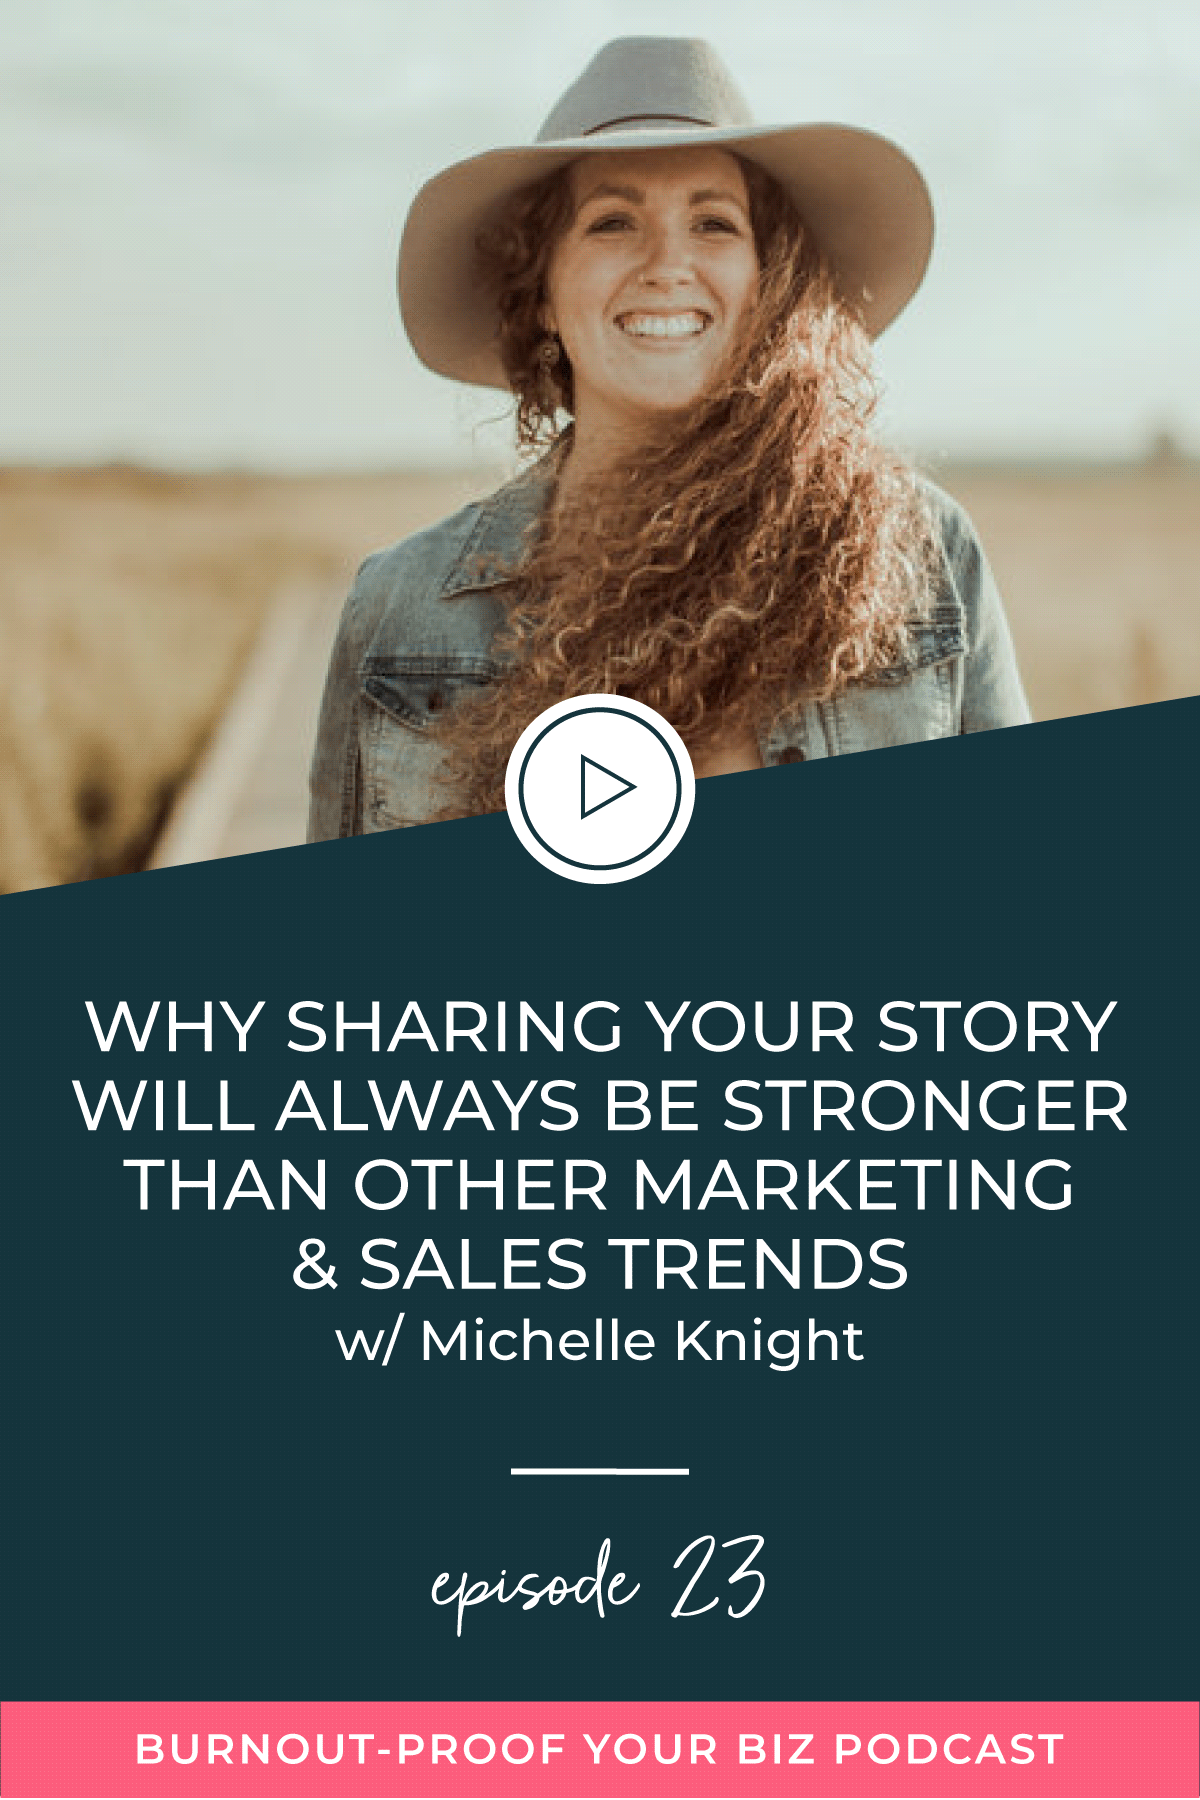 Burnout-Proof Your Biz Podcast with Chelsea B Foster   Episode 023 - Why Sharing Your Story Will Always Be Stronger Than Other Marketing & Sales Trends with Michelle Knight   Learn how to run your biz and live your dream life on your own terms without the fear of burnout.